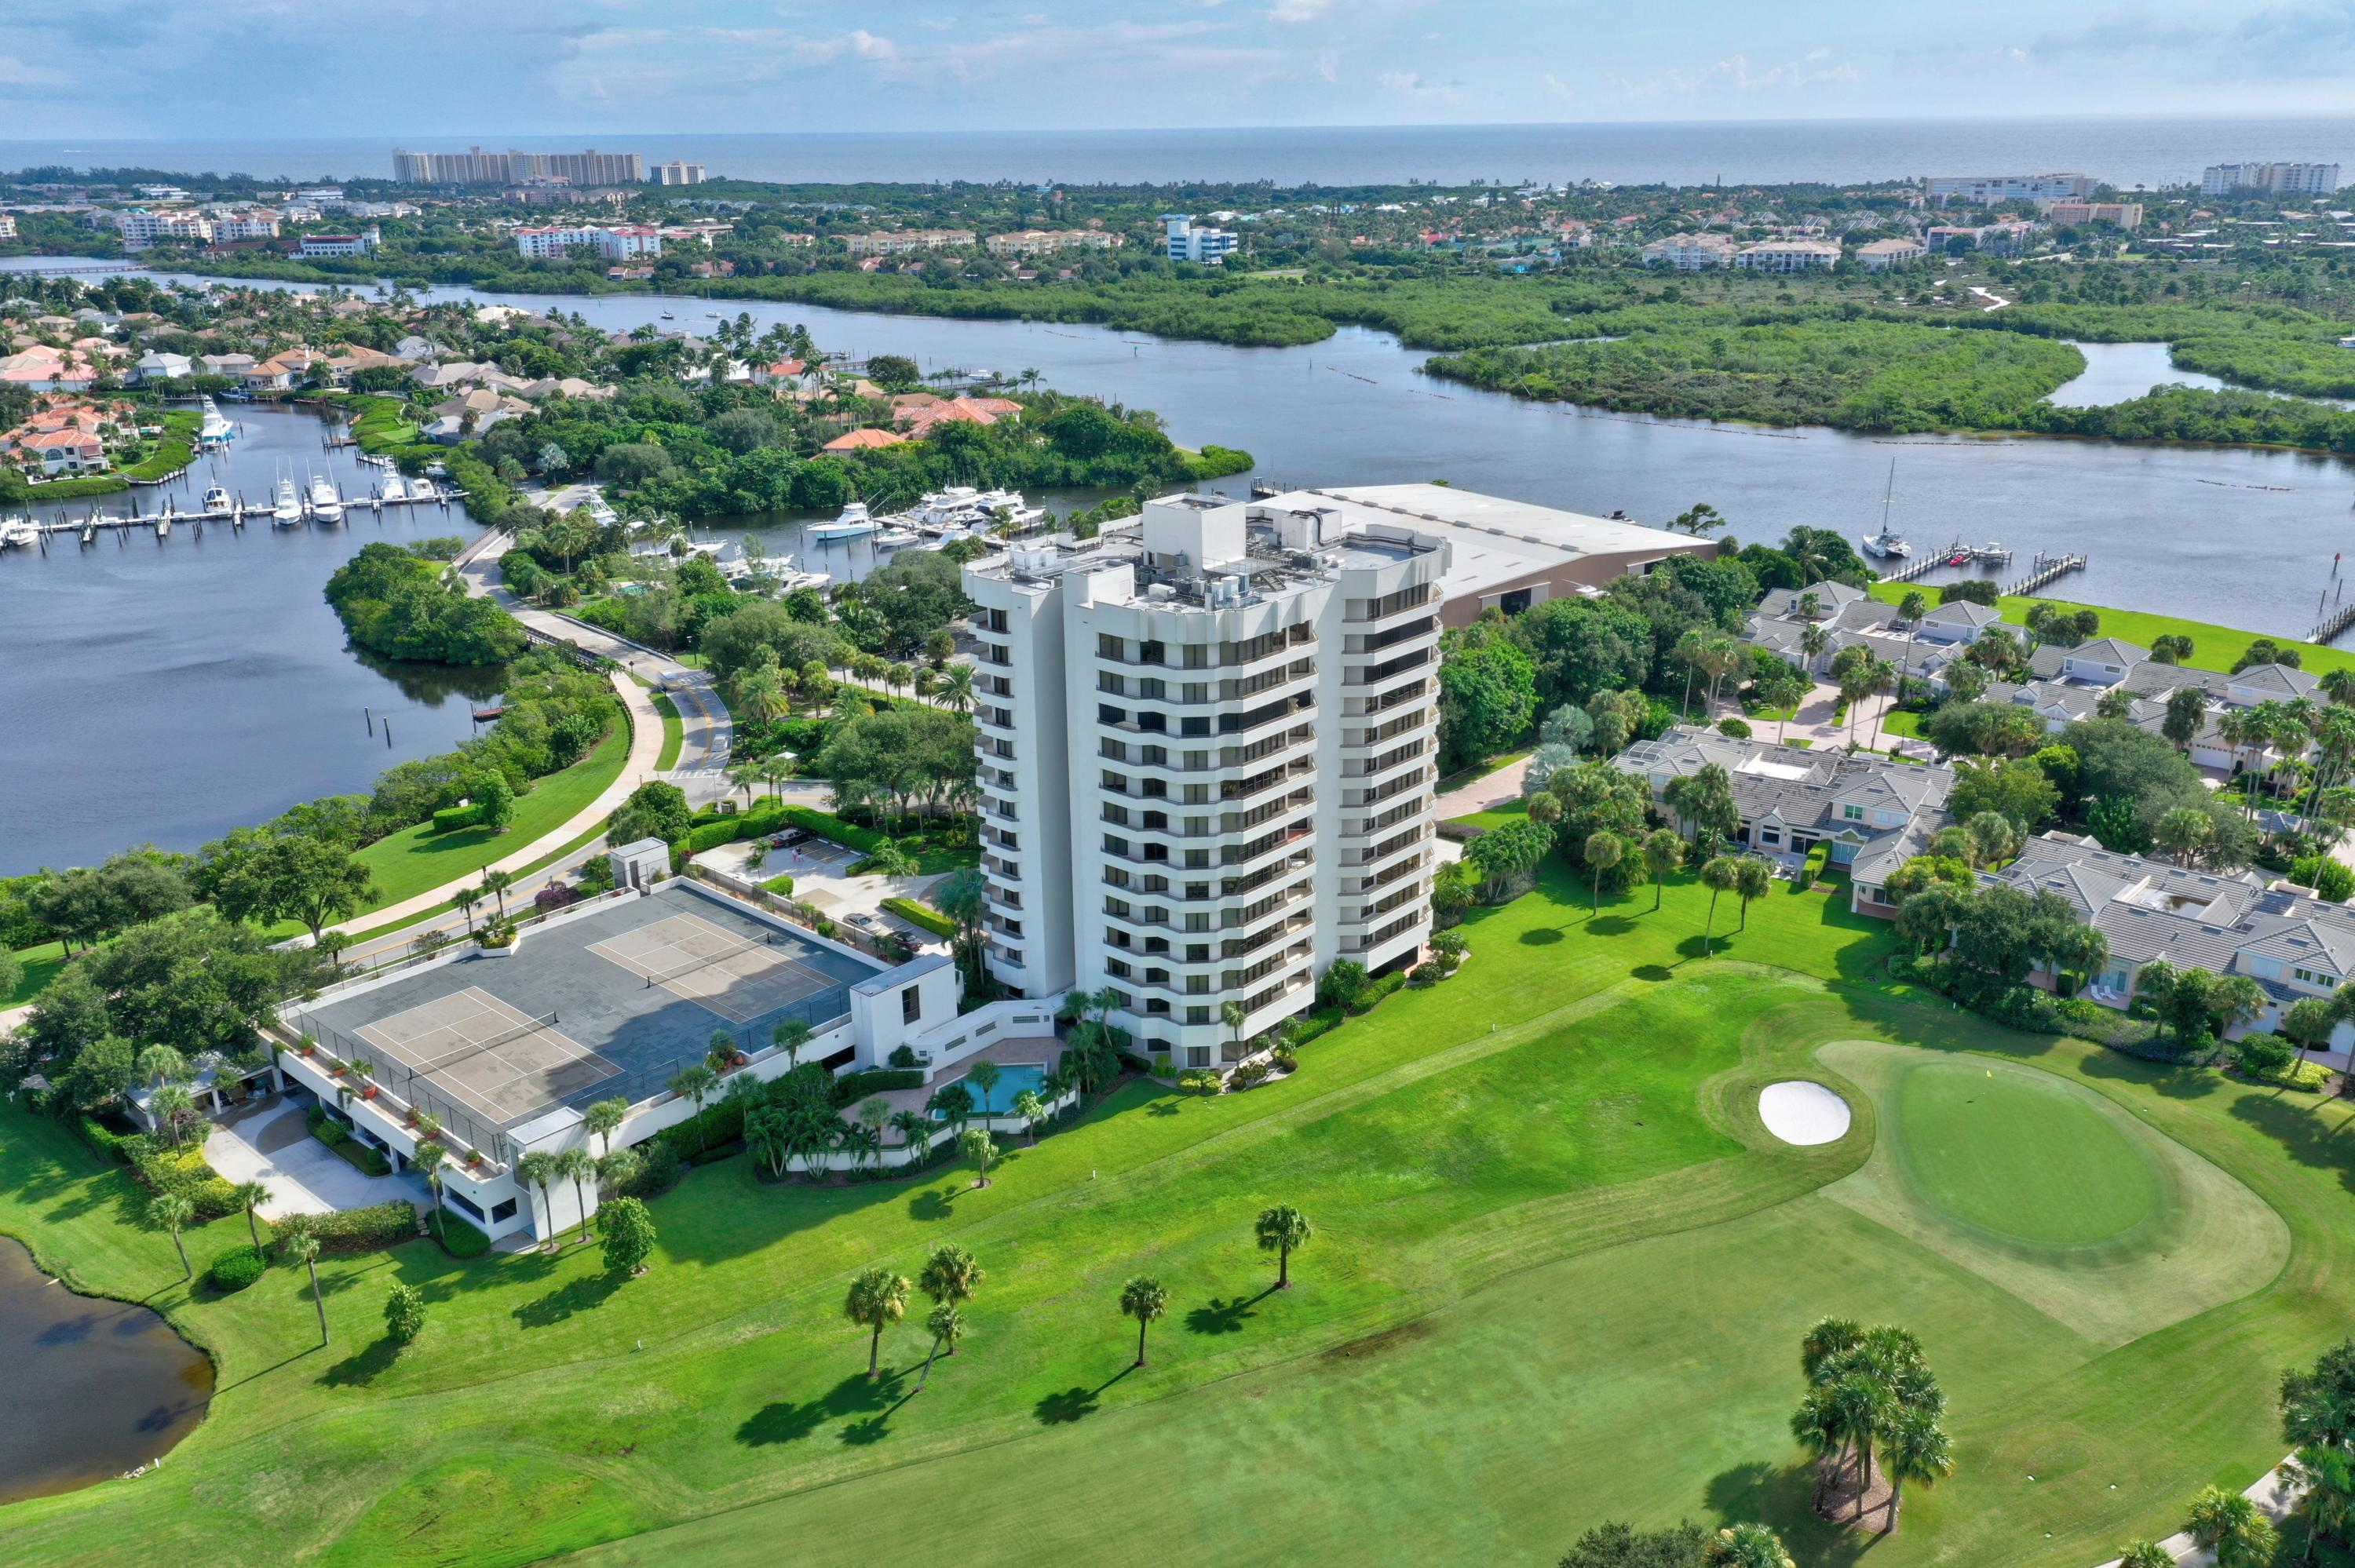 3322 Casseekey Island Road 202, Jupiter, Florida 33477, 2 Bedrooms Bedrooms, ,2.1 BathroomsBathrooms,A,Condominium,Casseekey Island,RX-10558069